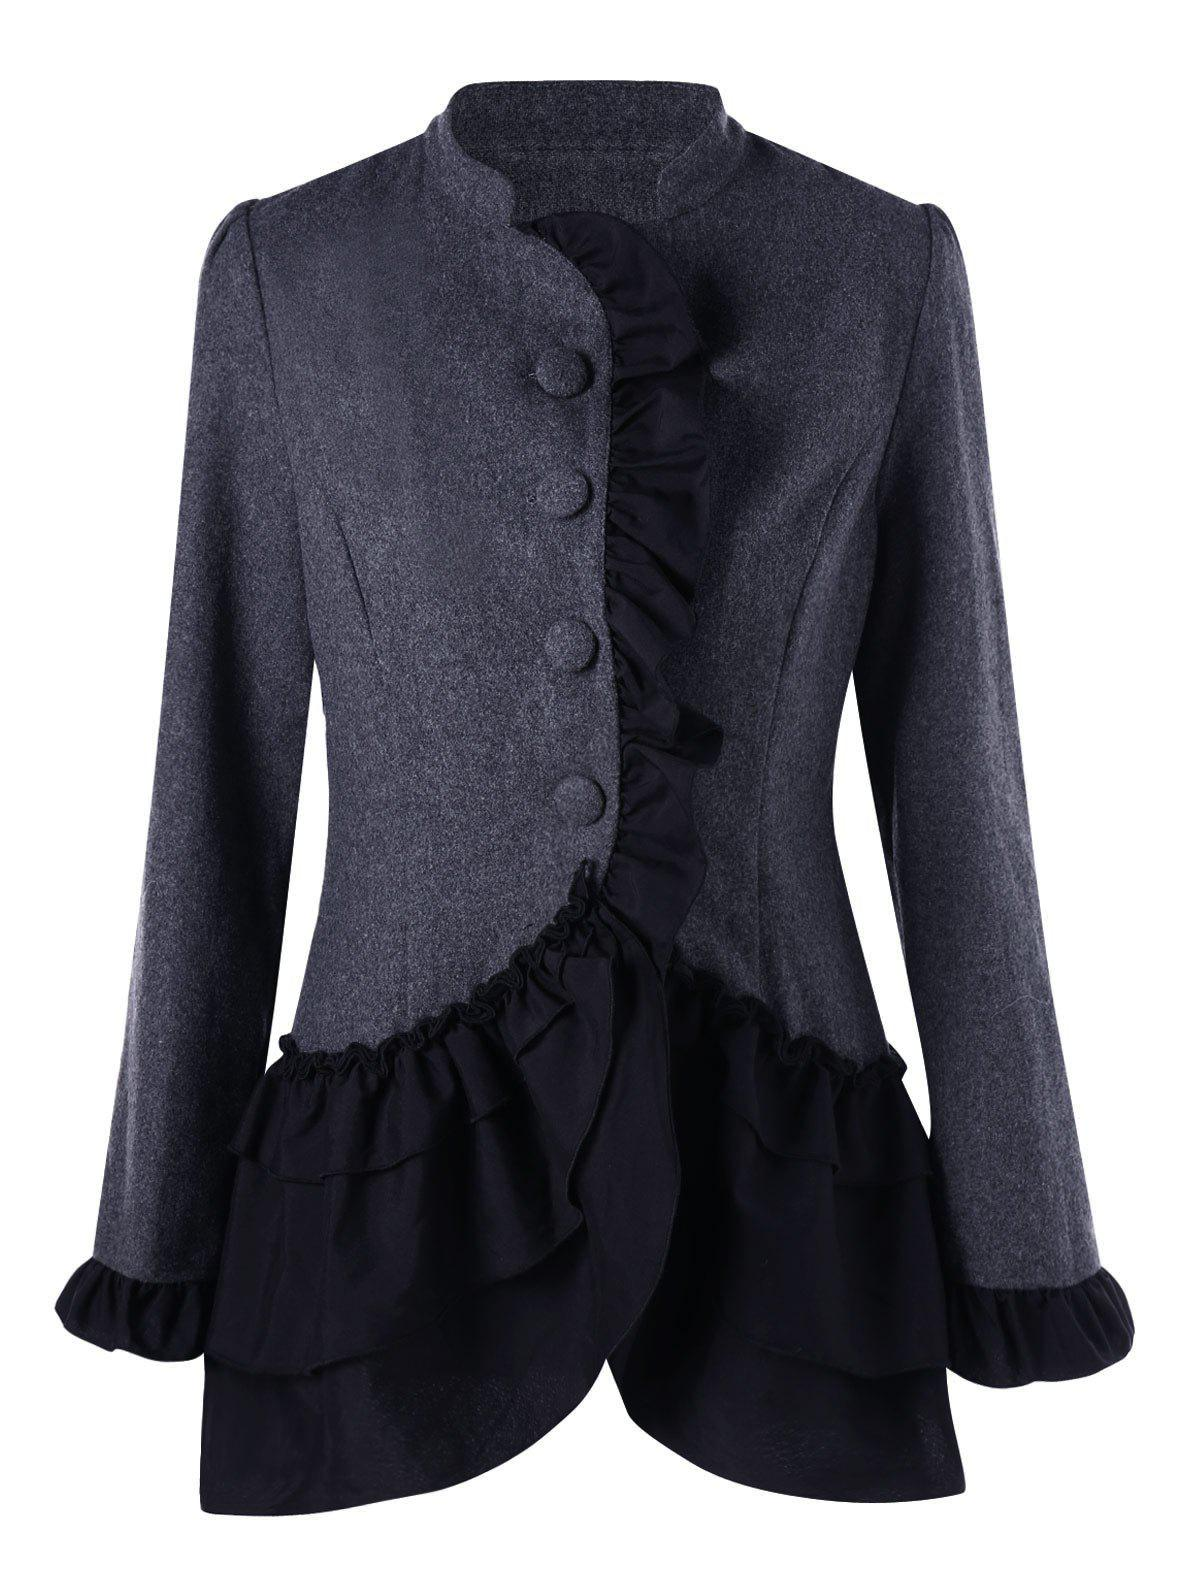 Ruffle Layered Coat - DEEP GRAY XL